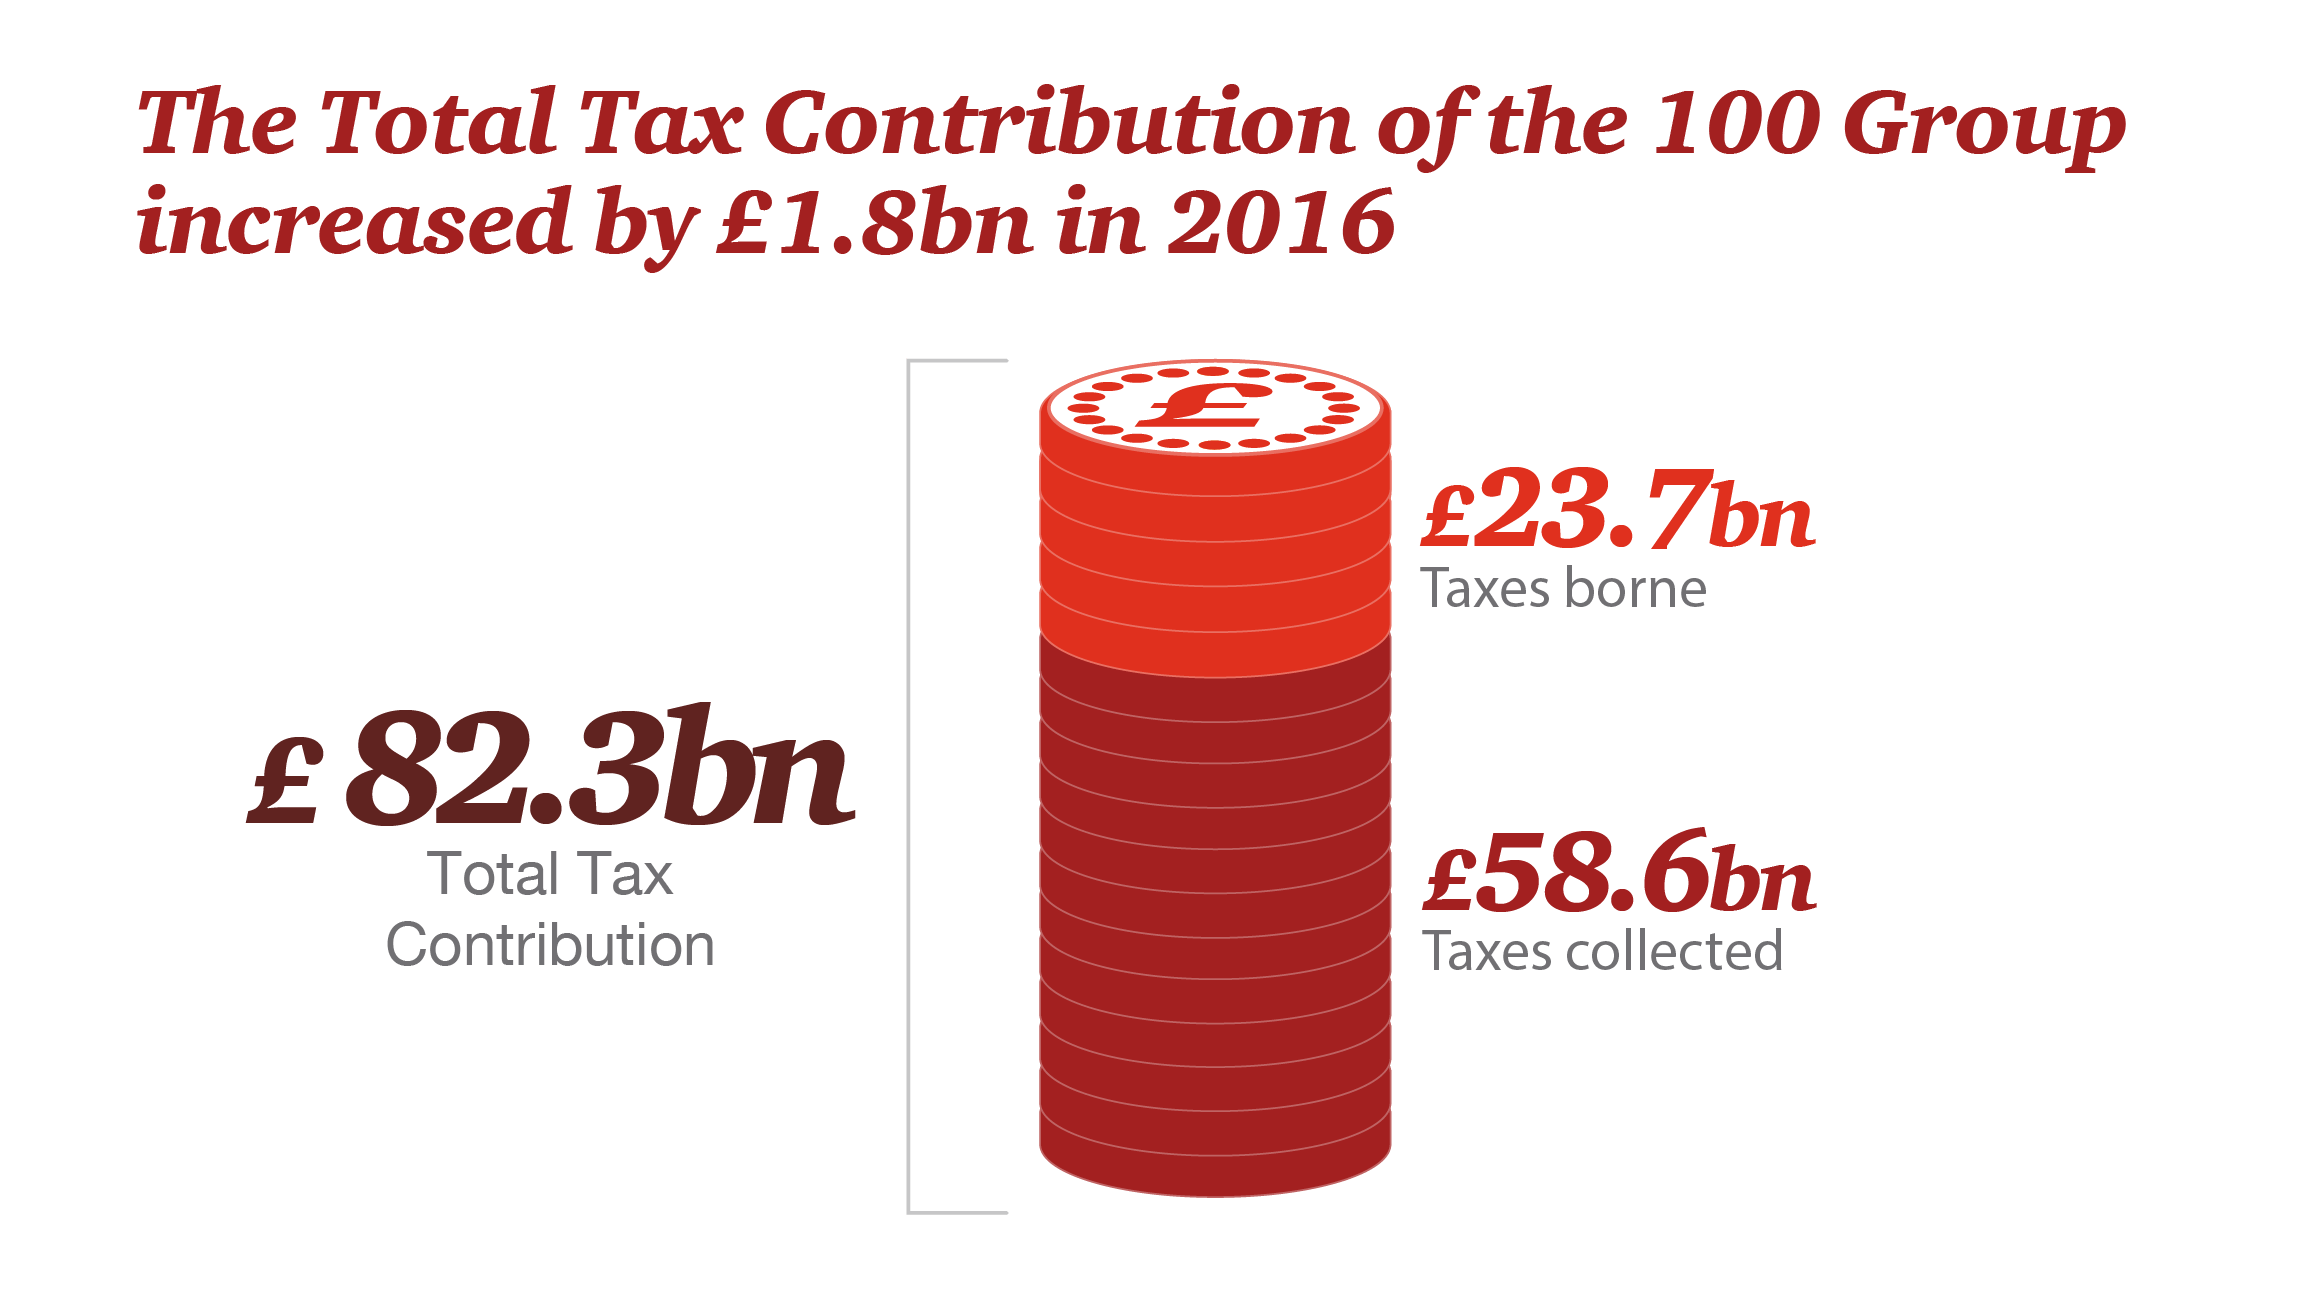 Total Tax Contribution Survey For The 100 Group